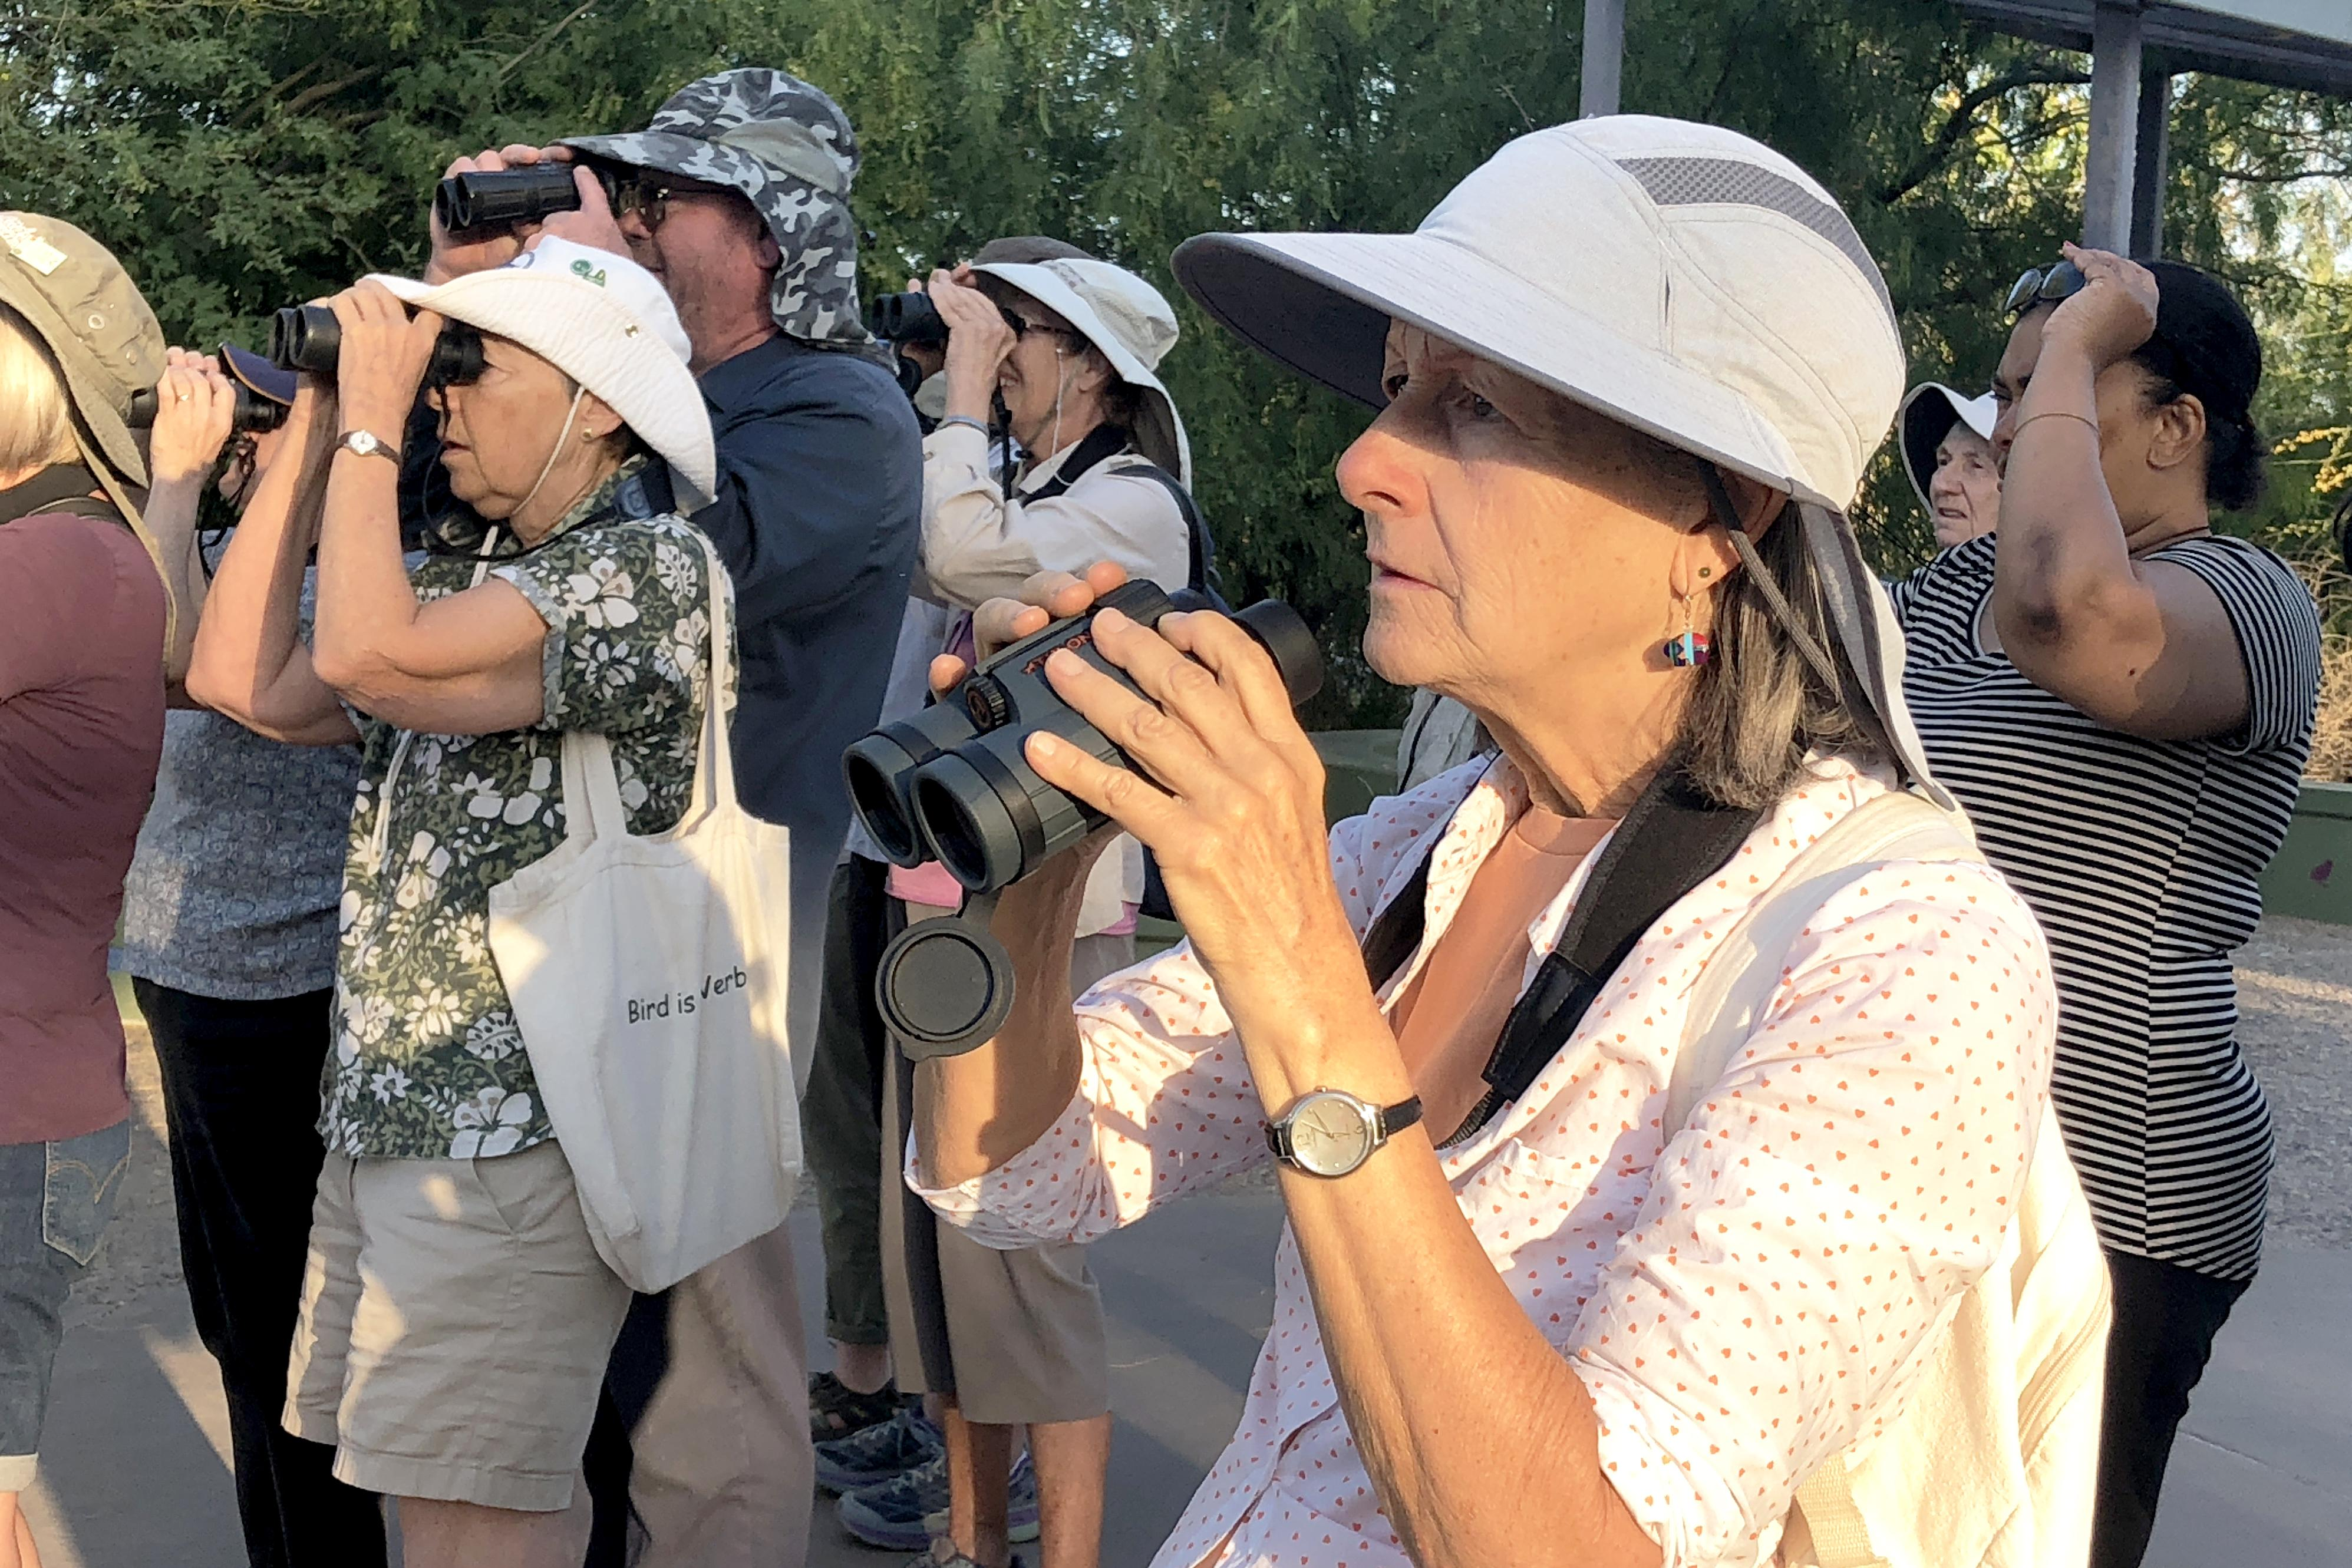 A group on a bird walk led by Kathe Anderson